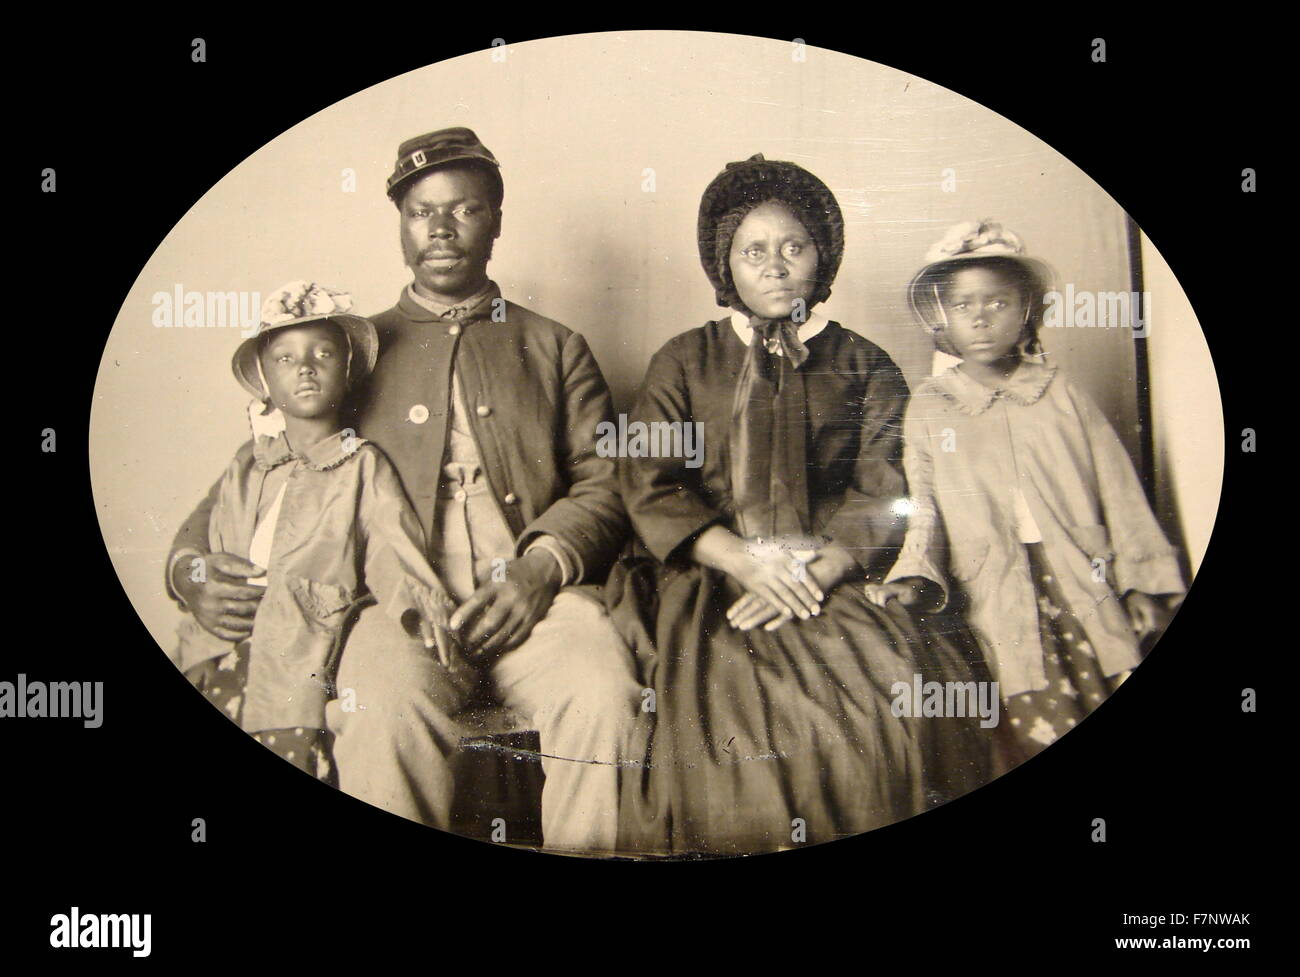 photograph of an African American, Civil War, Union soldier with his family. c1863-65 - Stock Image